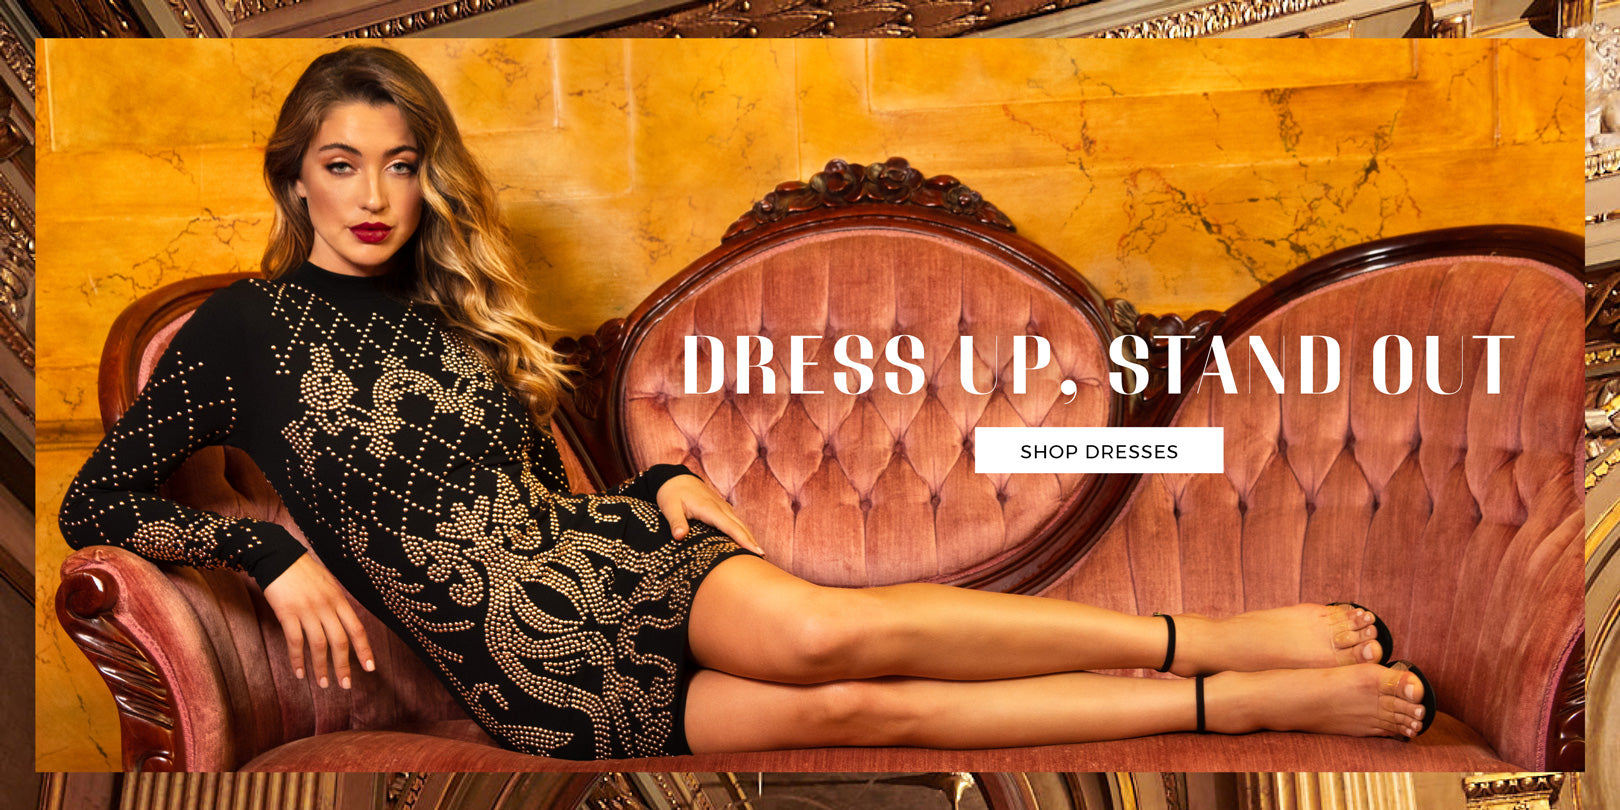 Dress Up, Stand Out - Shop Dresses